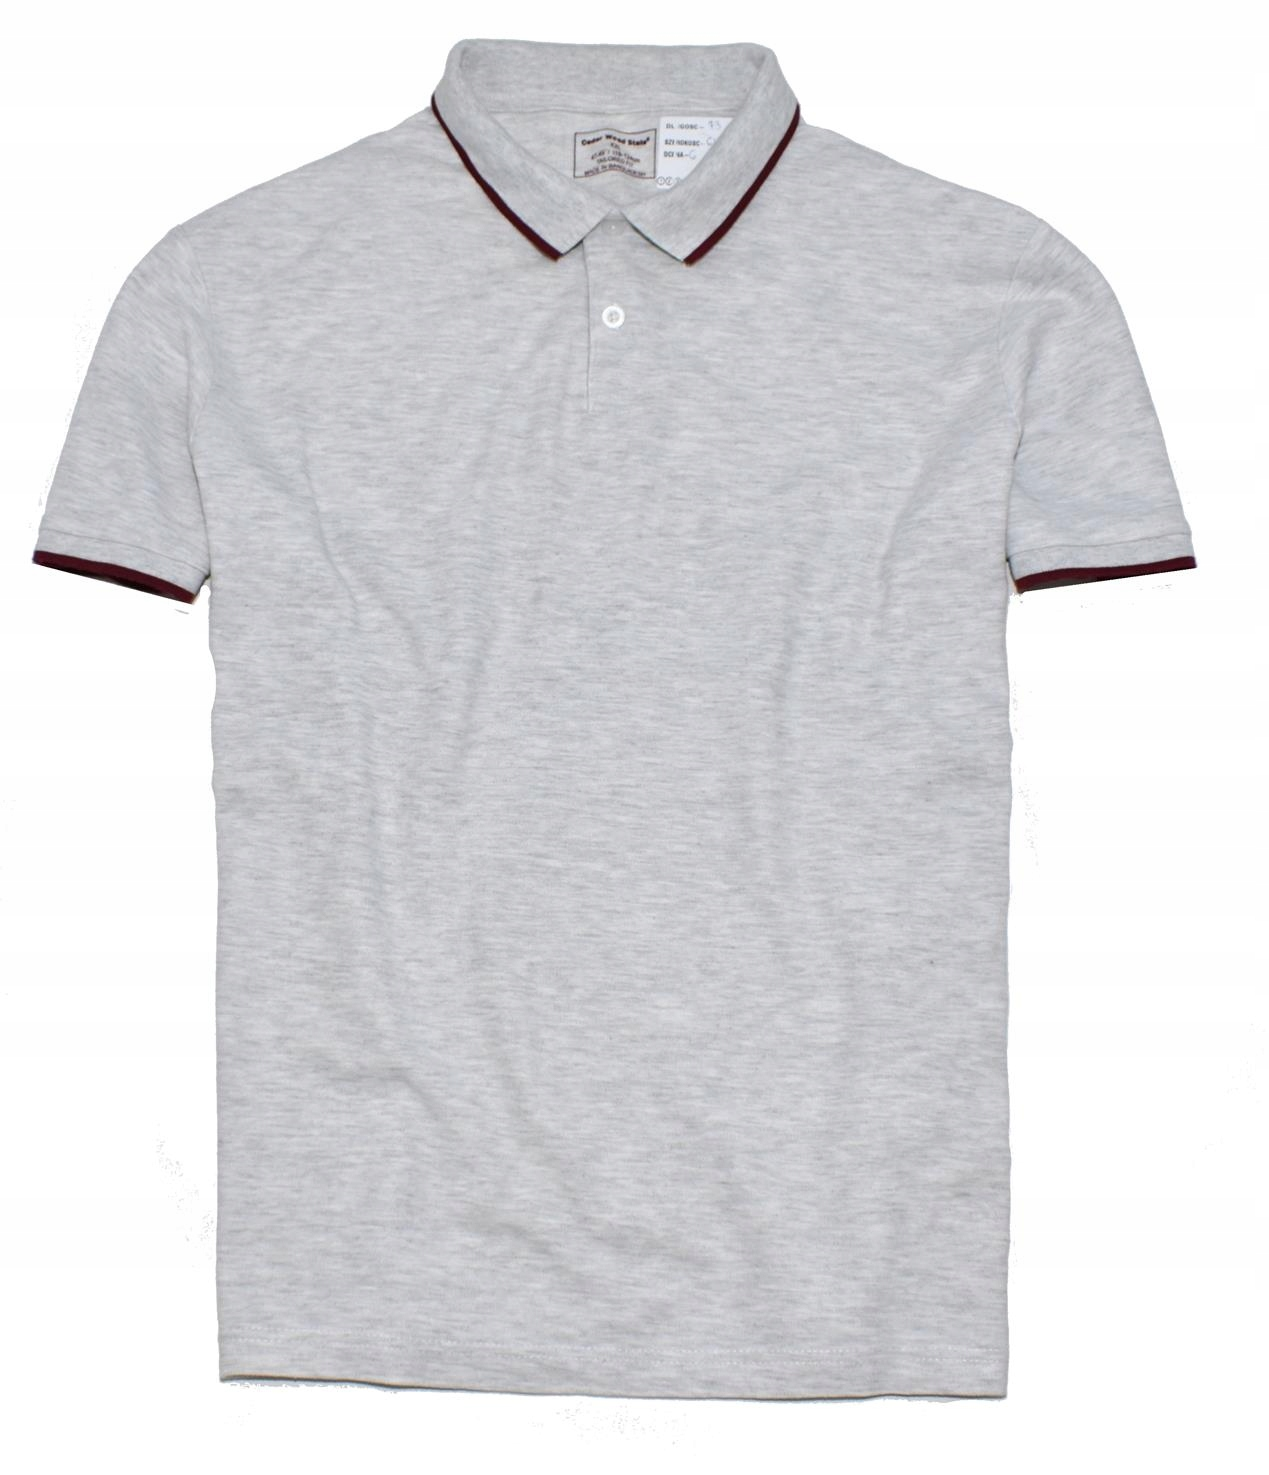 MM 103 CEDAWROOD_TRENDY LIGHT MELANGE POLO_2XL